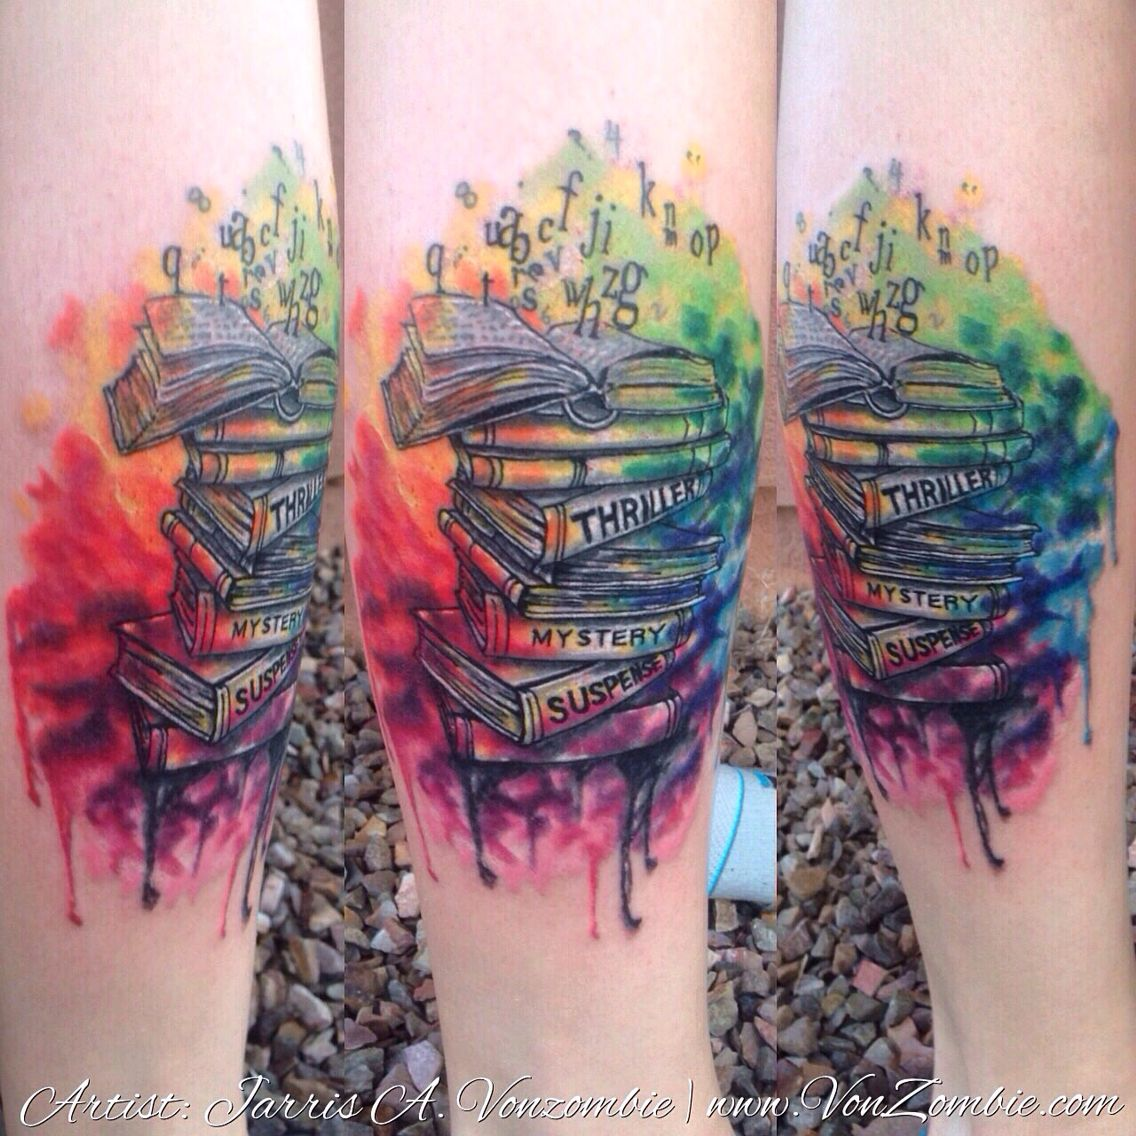 Book Cover Watercolor Tattoos : Books of watercolor tattoo created by jarris vonzombie